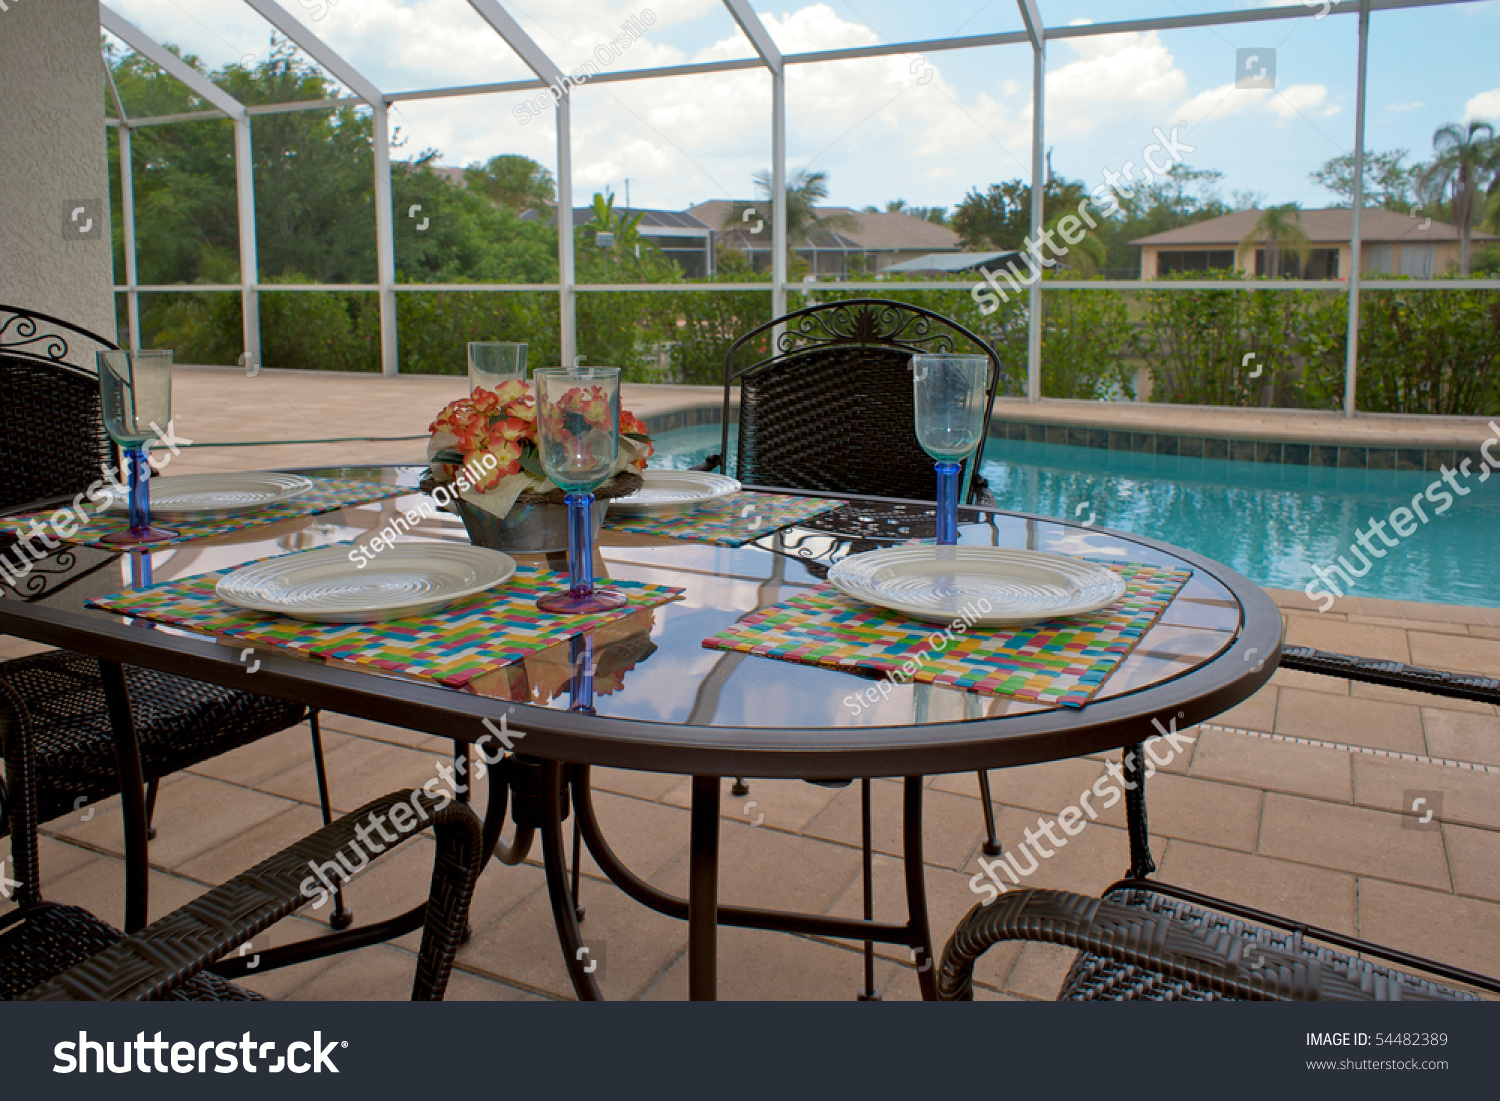 A Table Is Set For Dinner On An Outside Patio Or Lanai With Swimming Pool In